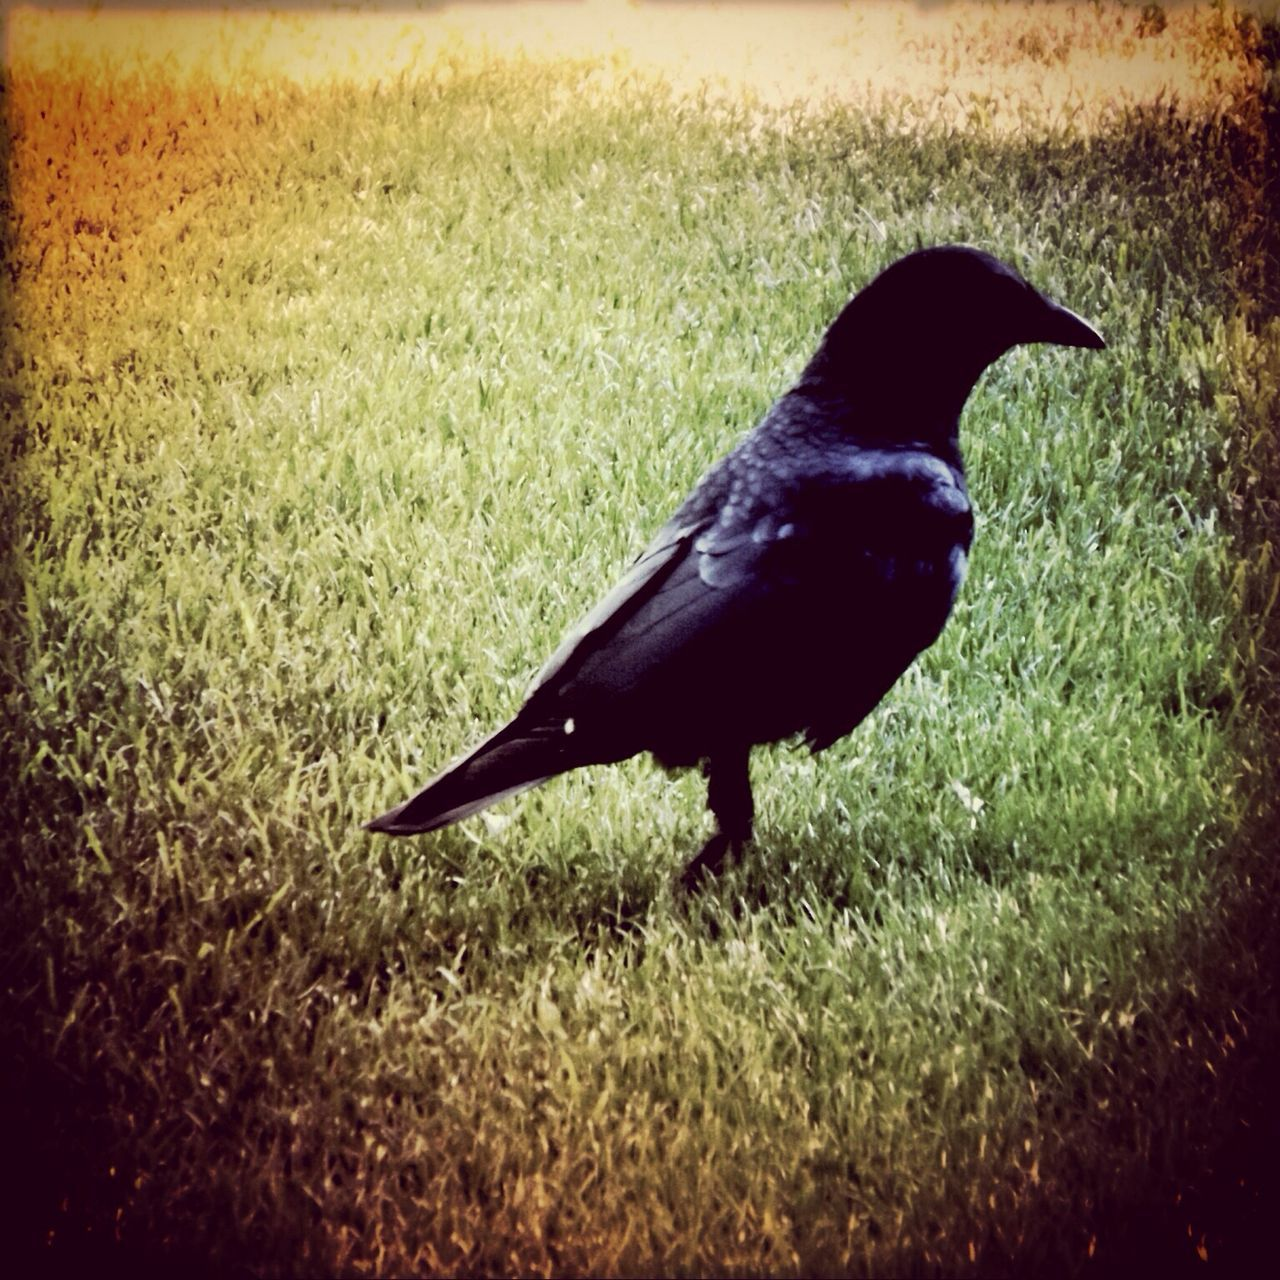 Raven On Grassy Field